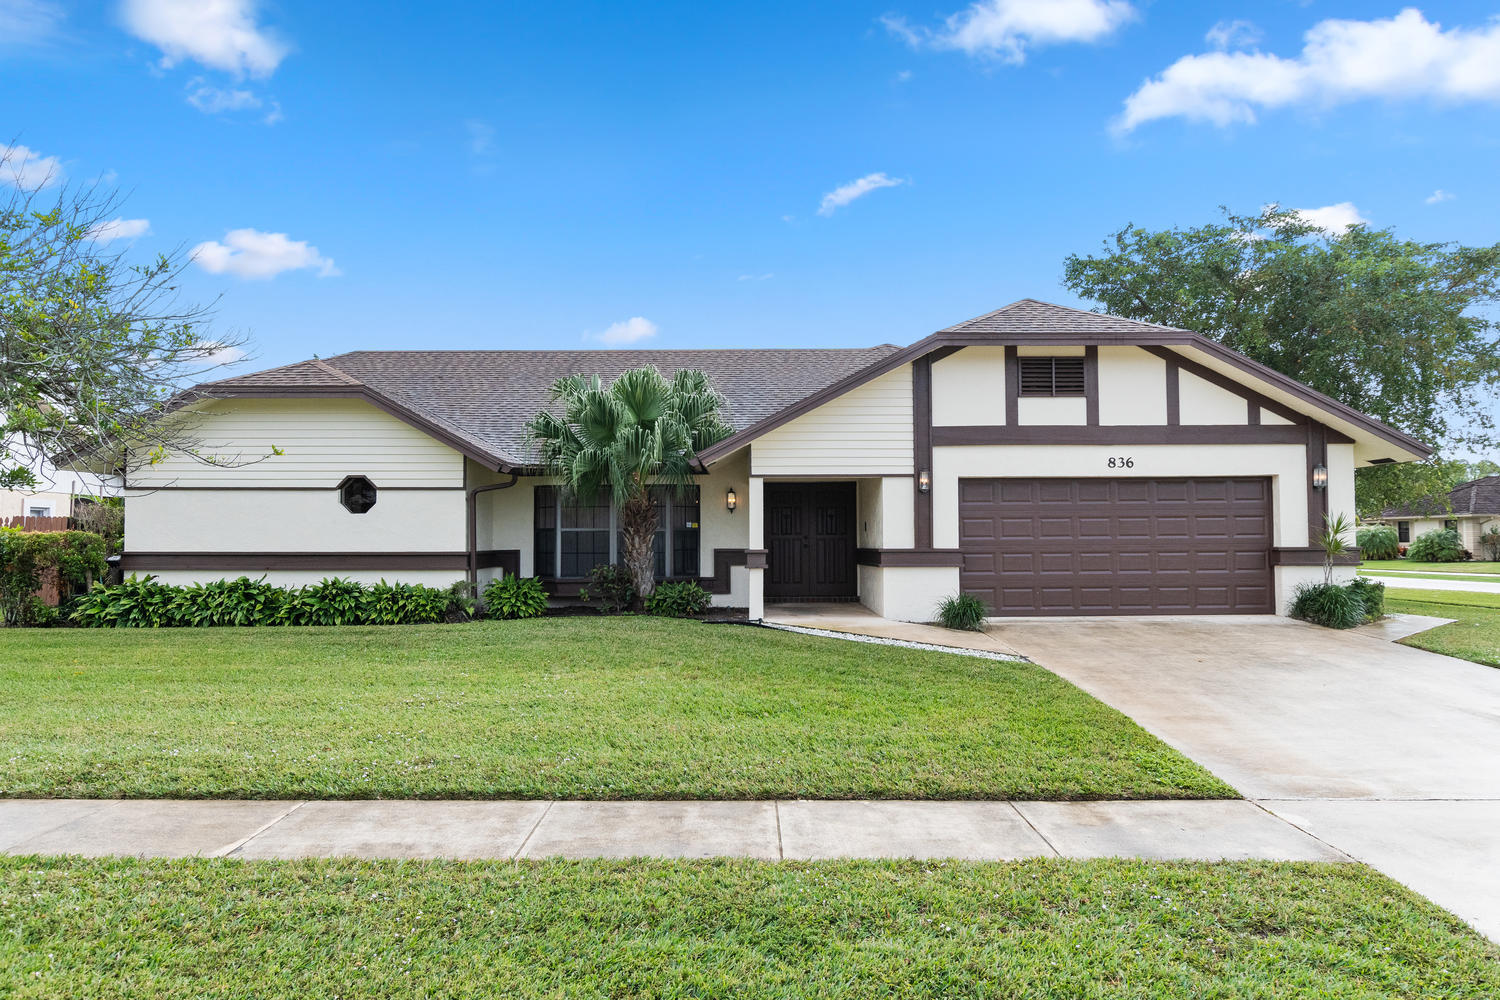 836 Silverbell Lane, Wellington, Florida 33414, 3 Bedrooms Bedrooms, ,2 BathroomsBathrooms,Single Family,For Sale,SUGAR POND MANOR,Silverbell,836,RX-10493347